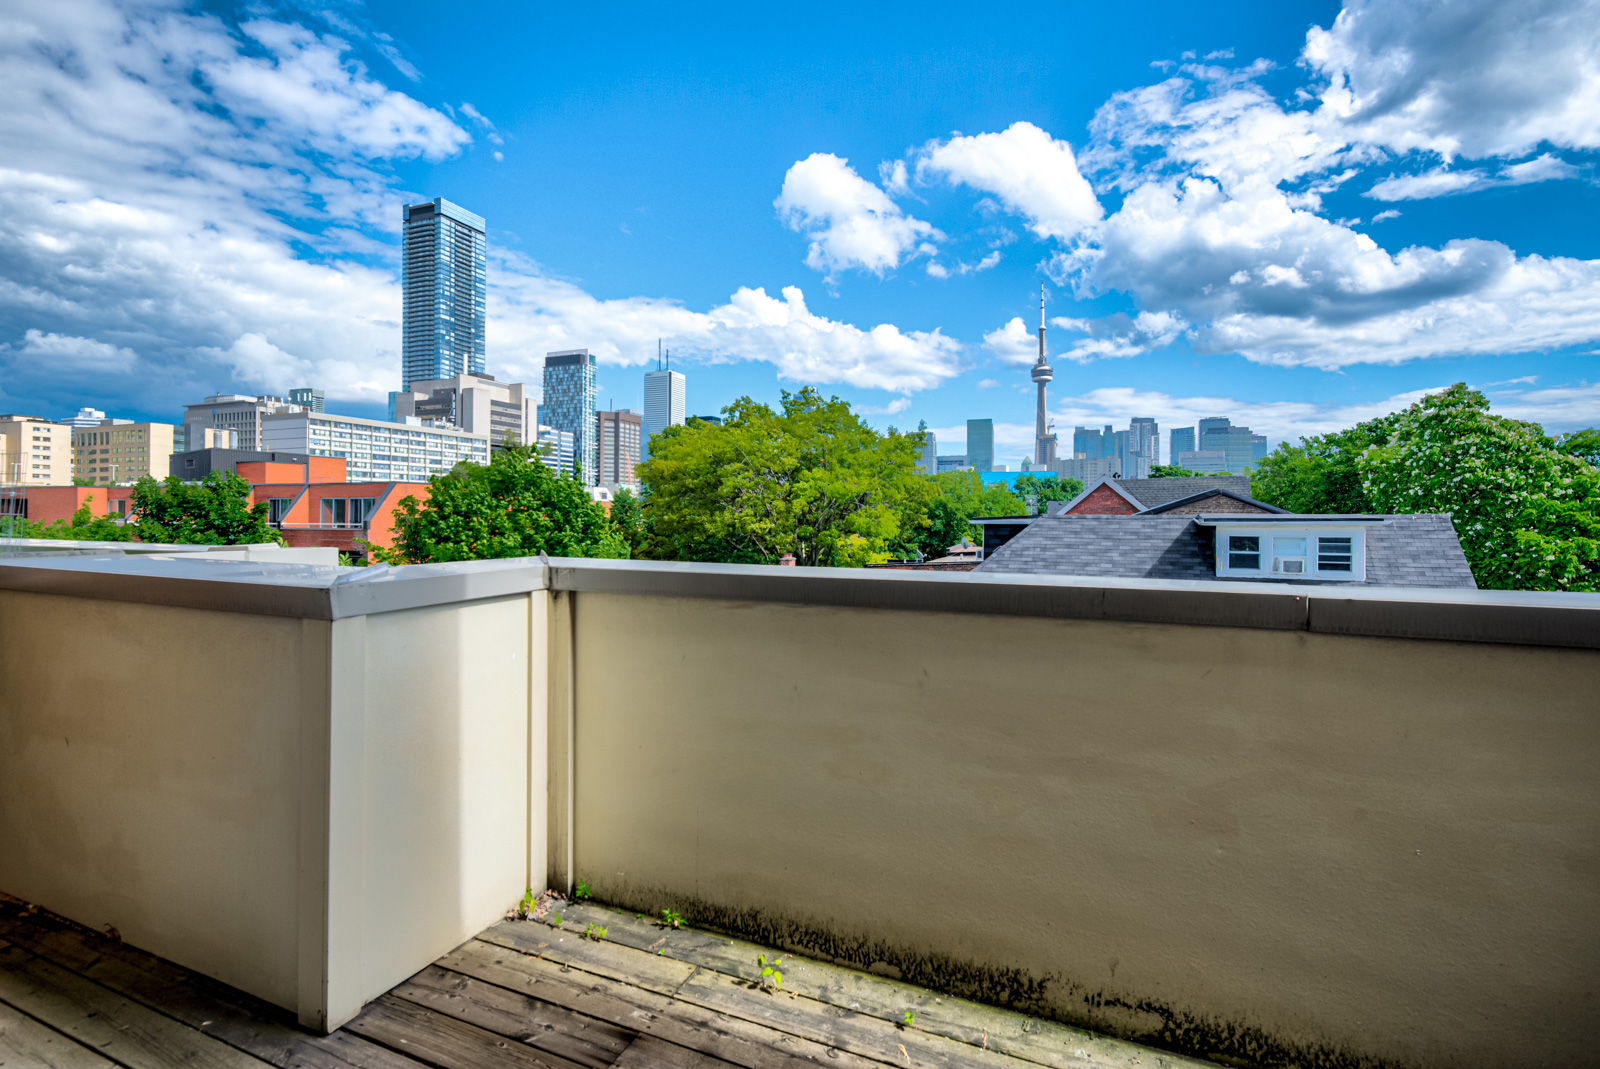 Afternoon view of Toronto skyline from 12A Cecil balcony.